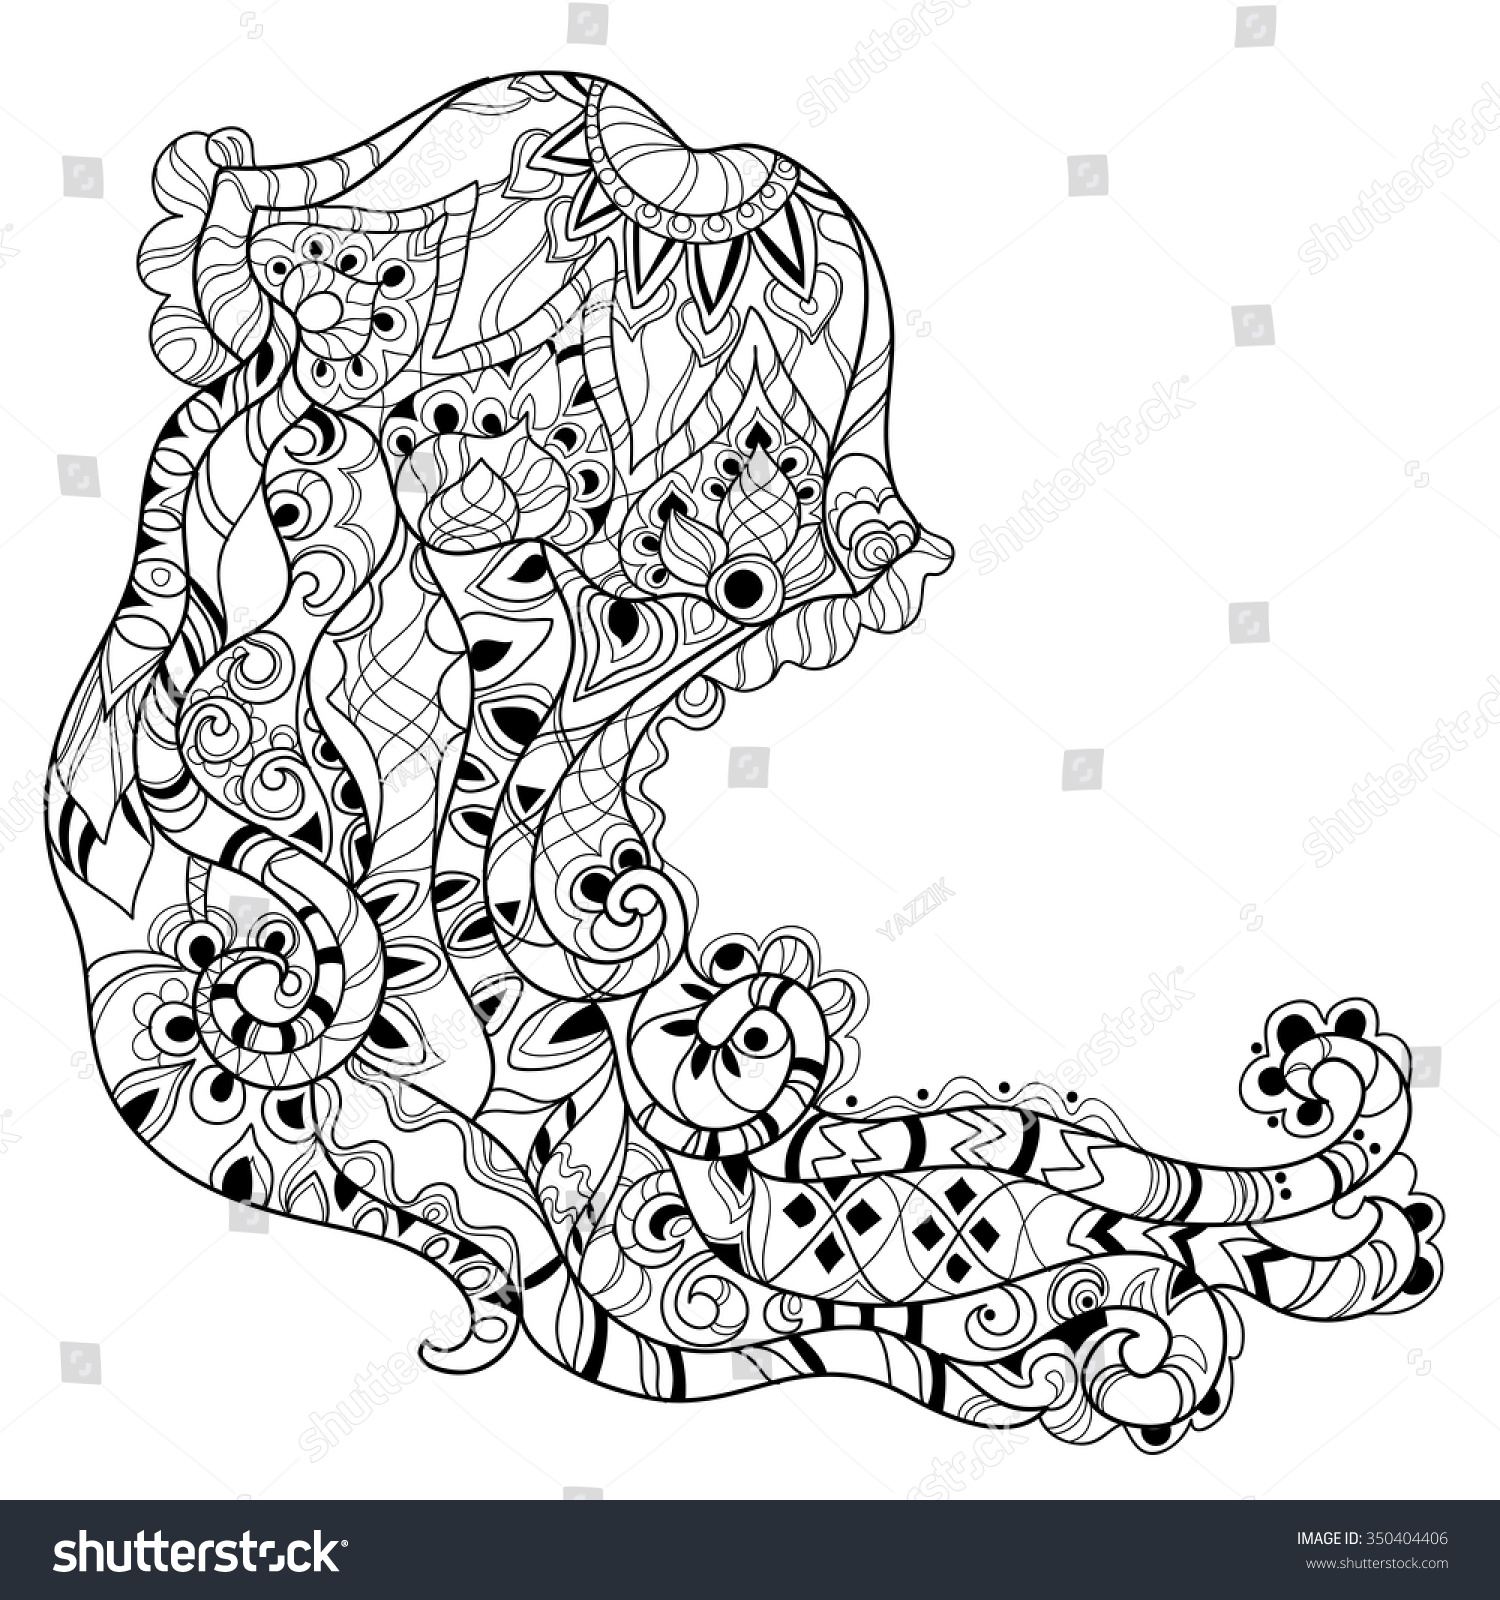 Coloring pages jellyfish - Zentangle Jellyfish Doodle Hand Drawn Vector Illustration Sketch For Tattoo Or Coloring Pages